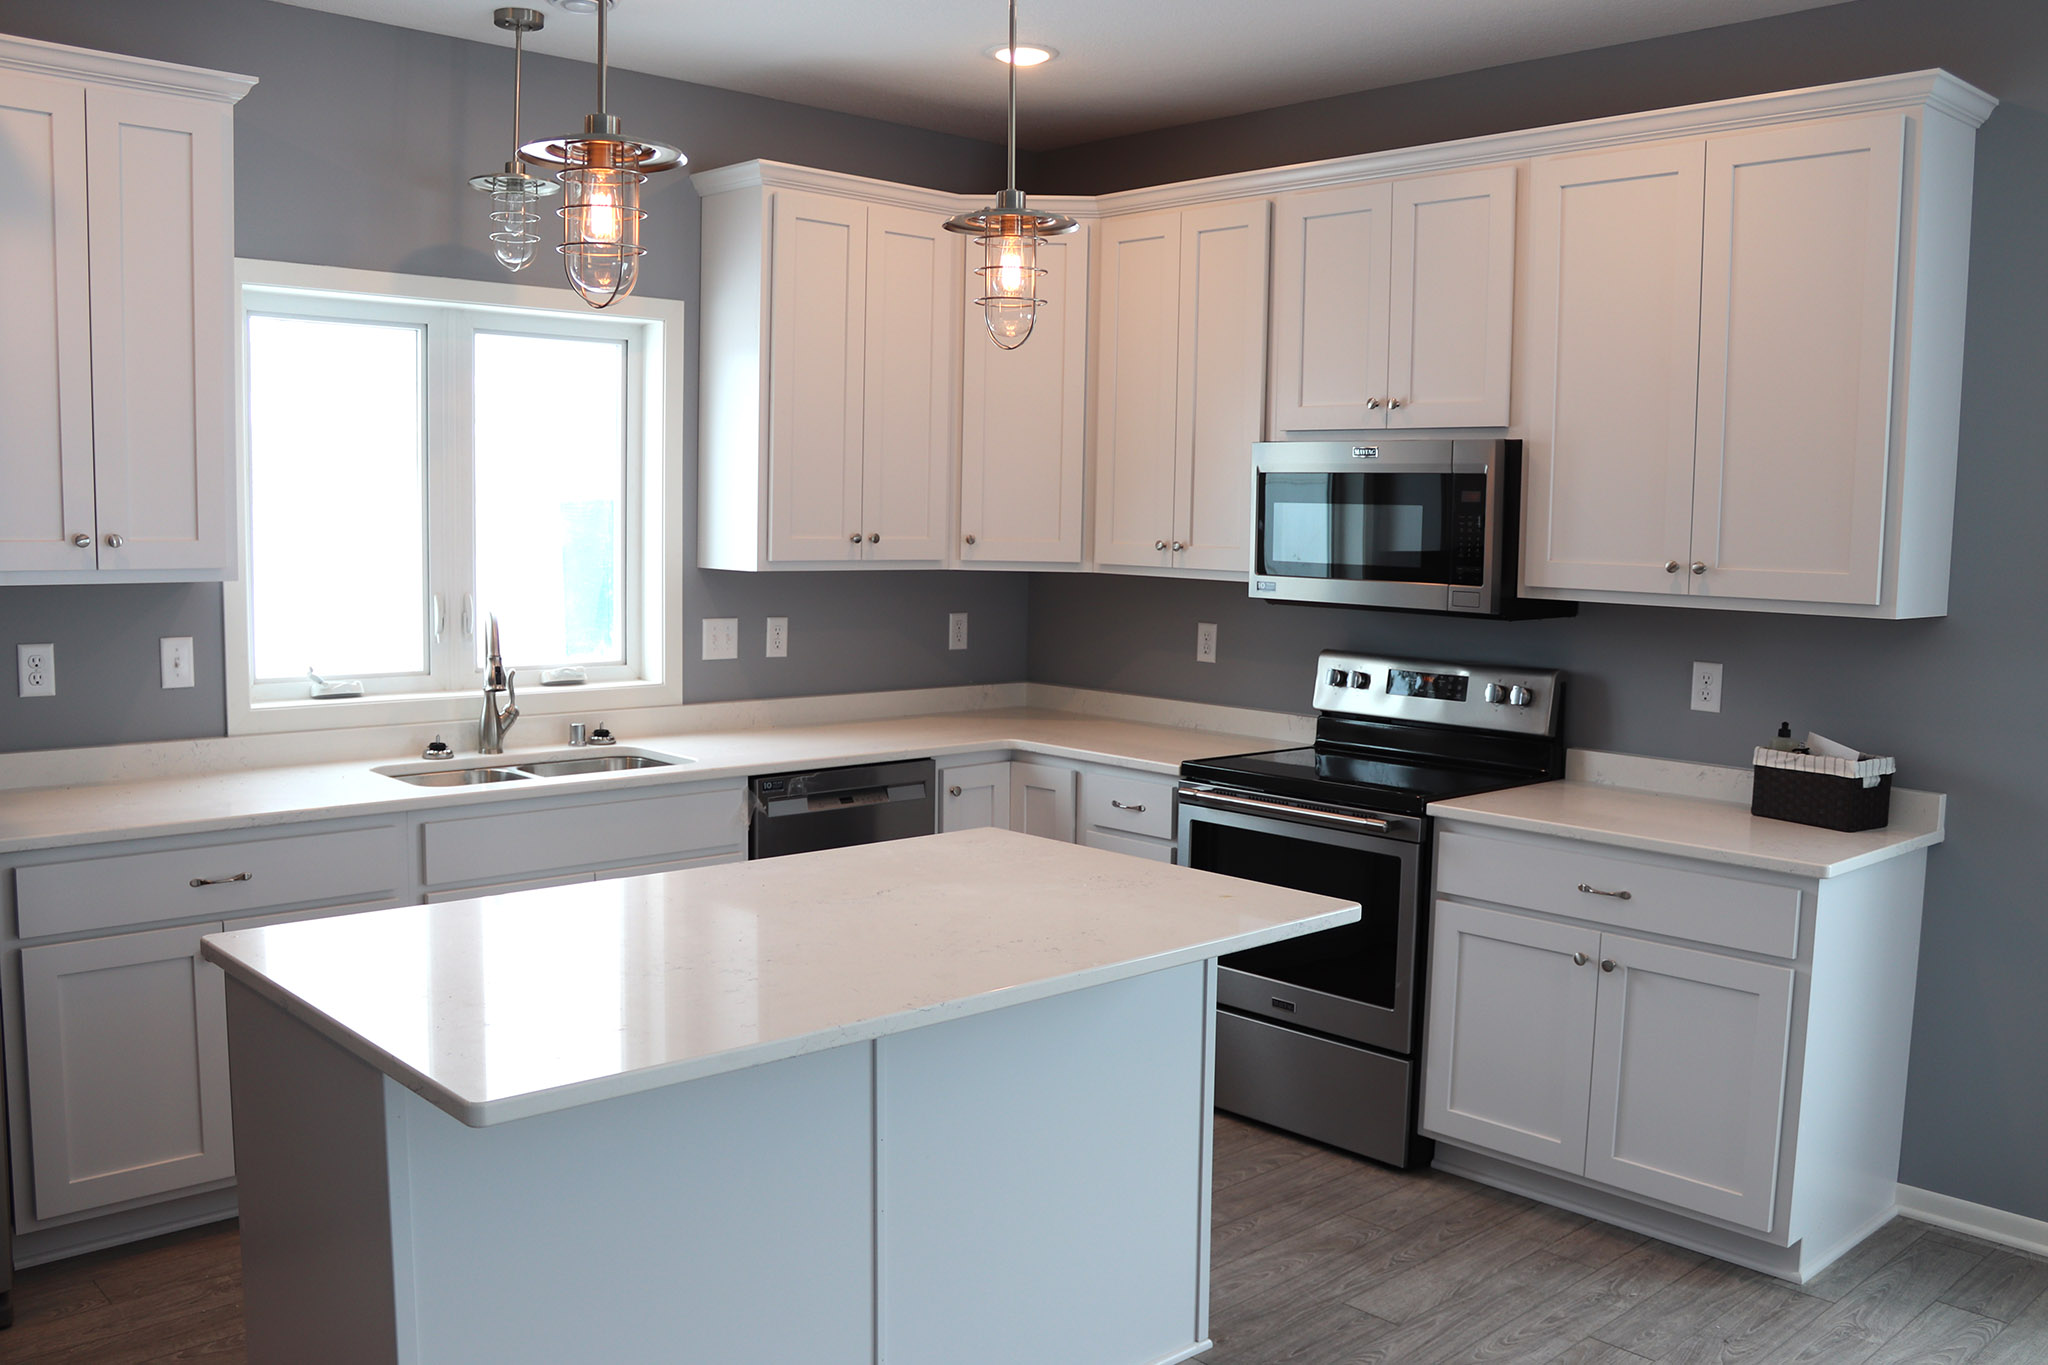 Kitchen with white cabinets and island